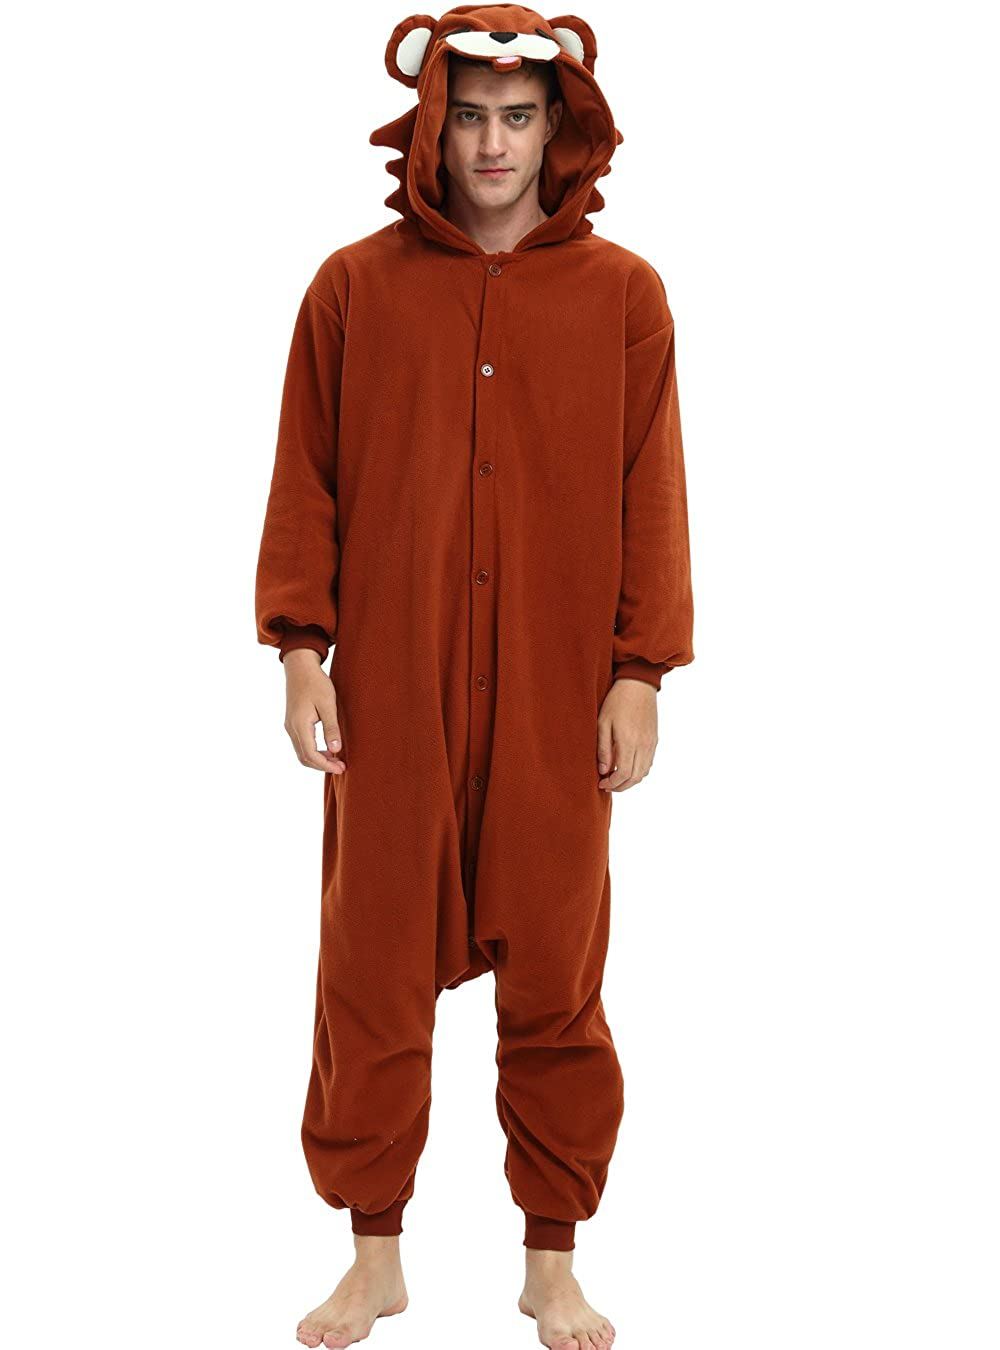 Amazon.com: Es Unico Pedobear Onesie for Adult and Teens, Halloween Brown Bear Costume: Clothing